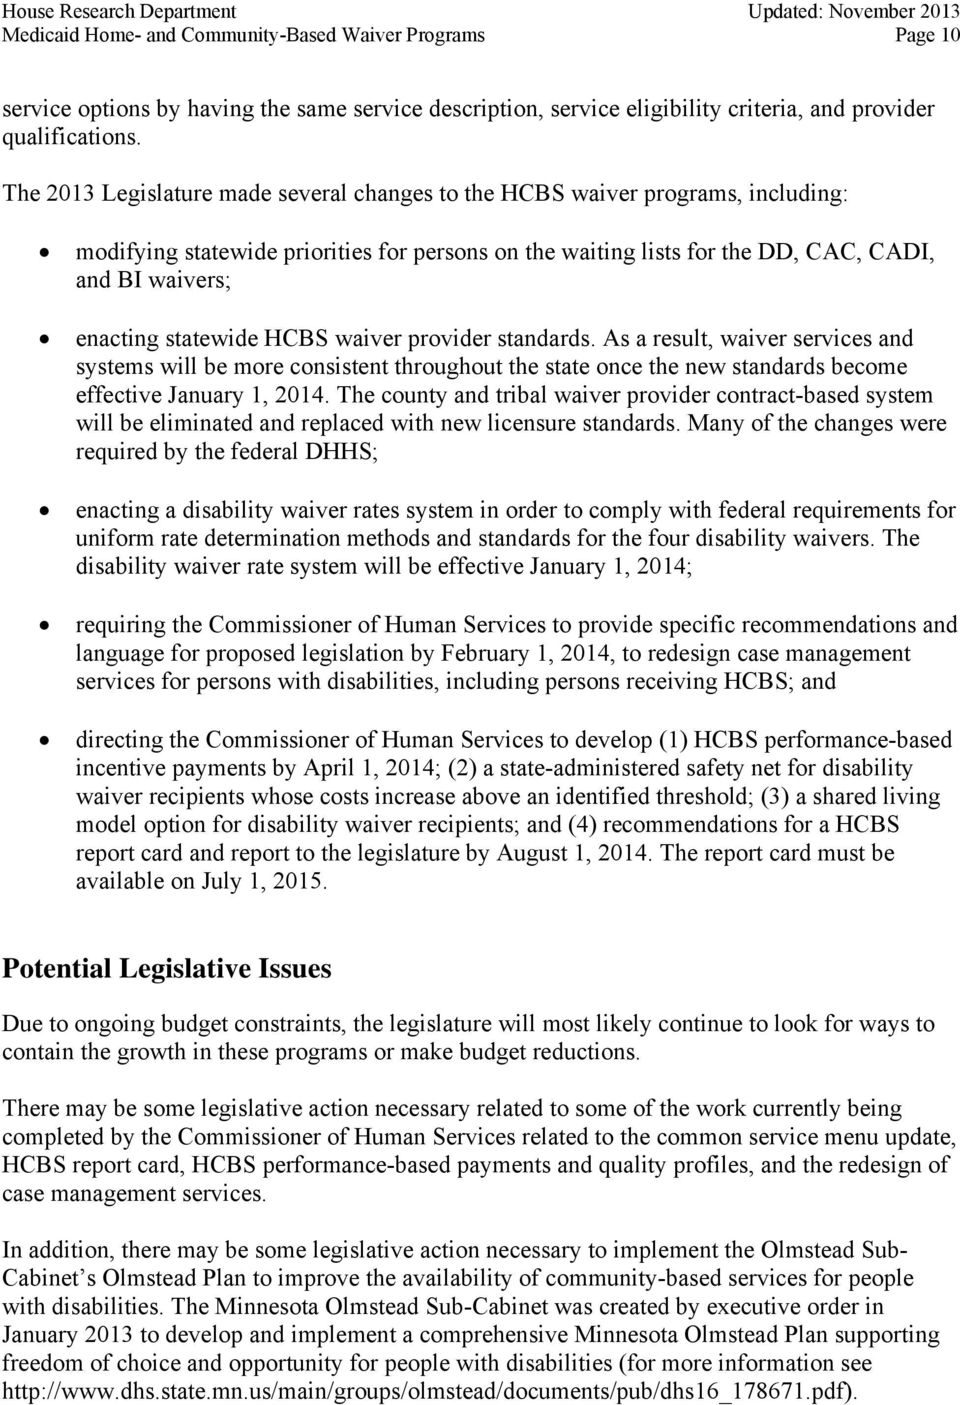 statewide HCBS waiver provider standards. As a result, waiver services and systems will be more consistent throughout the state once the new standards become effective January 1, 2014.